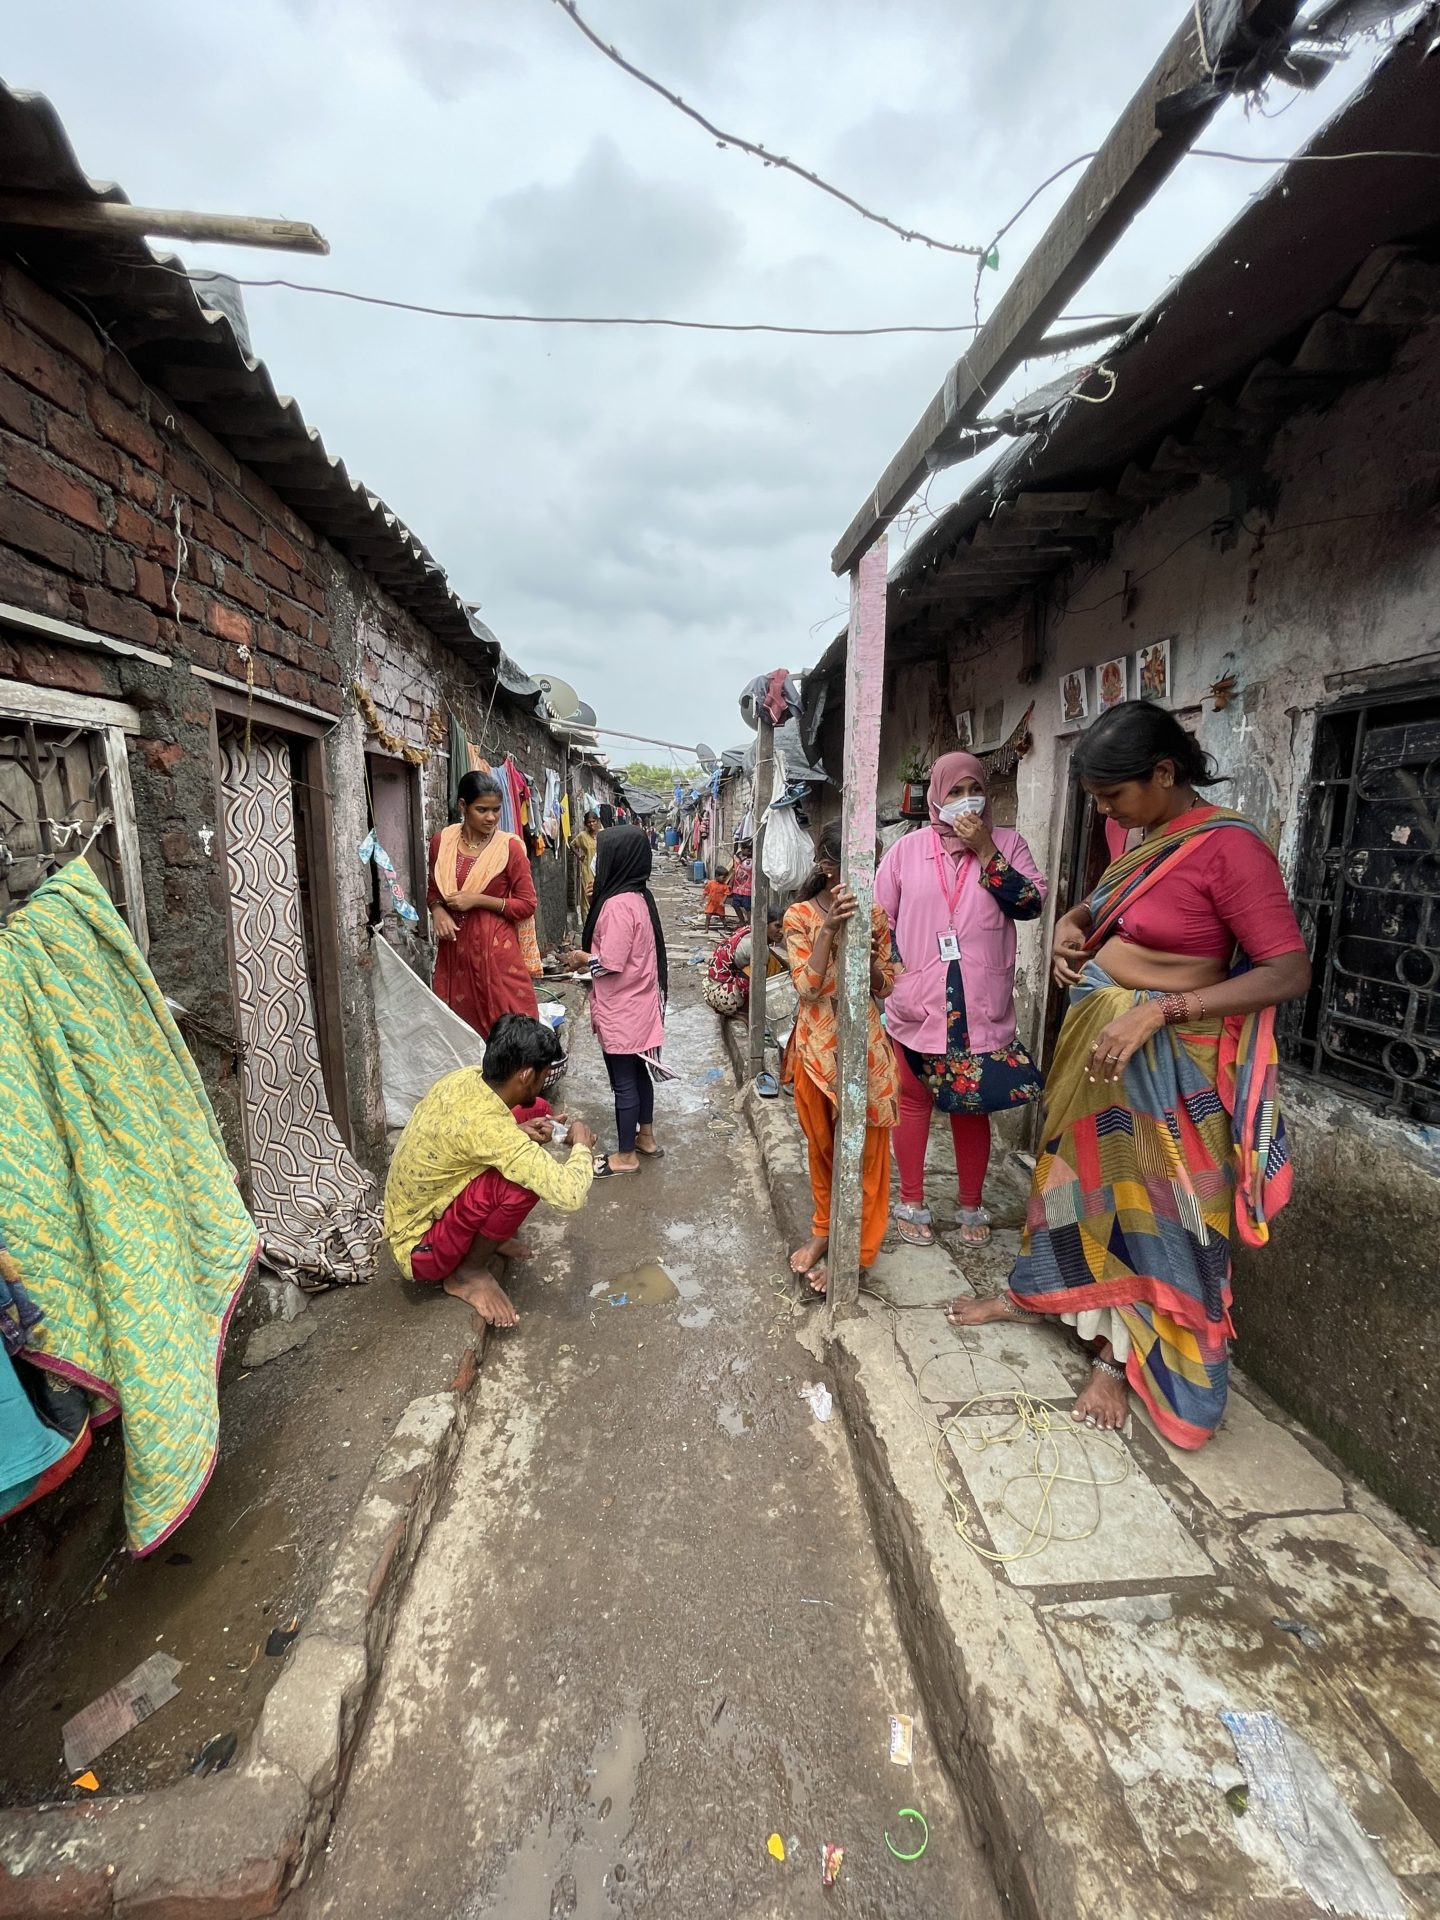 In this photo, it is a cloudy day when Uzma and Mariam from Myna Mahila Foundation are at the doorstep of some destitute families living in a Mumbai transit camp. They stand in a narrow alleyway with slums on both sides, clothes hanging to dry and electric wires in the sky. They are speaking to the slum residents about their health and livelihood situation and asking them to go to Myna's mobile clinic for support.